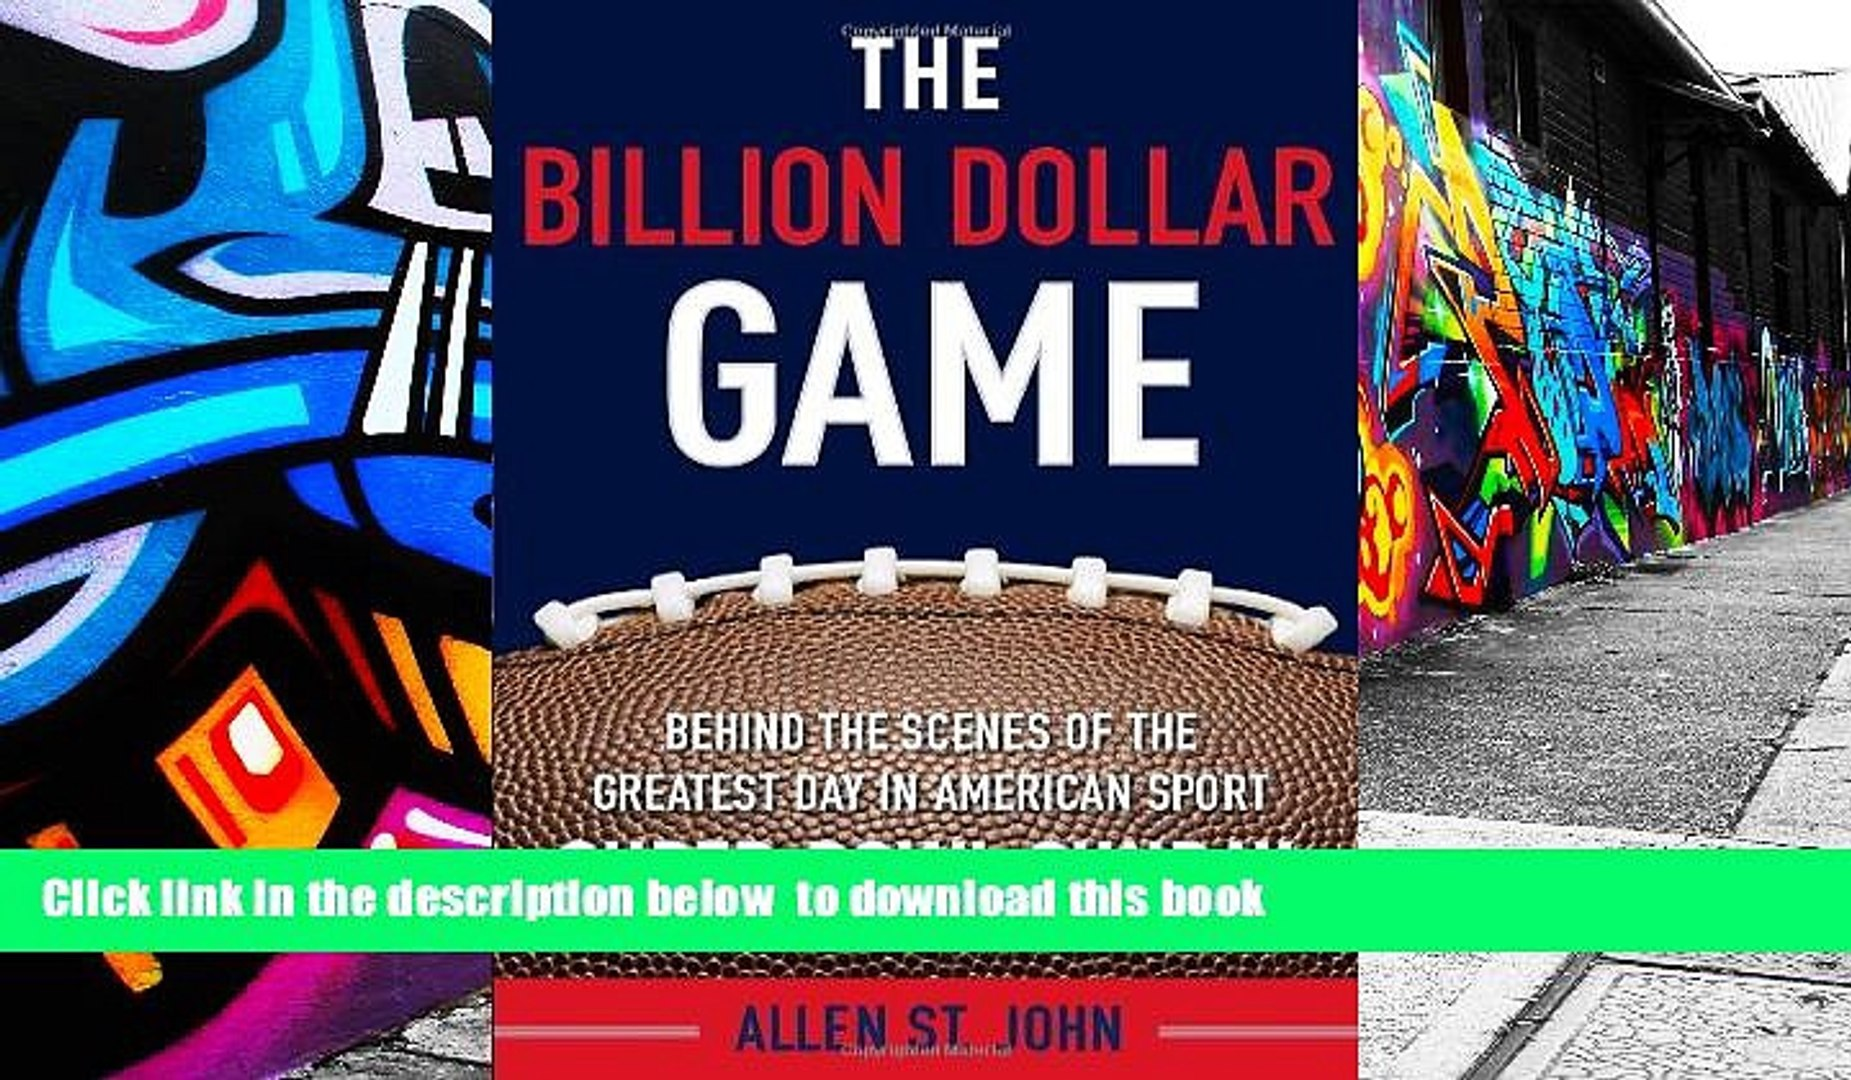 PDF [FREE] DOWNLOAD  The Billion Dollar Game: Behind-the-Scenes of the Greatest Day In American